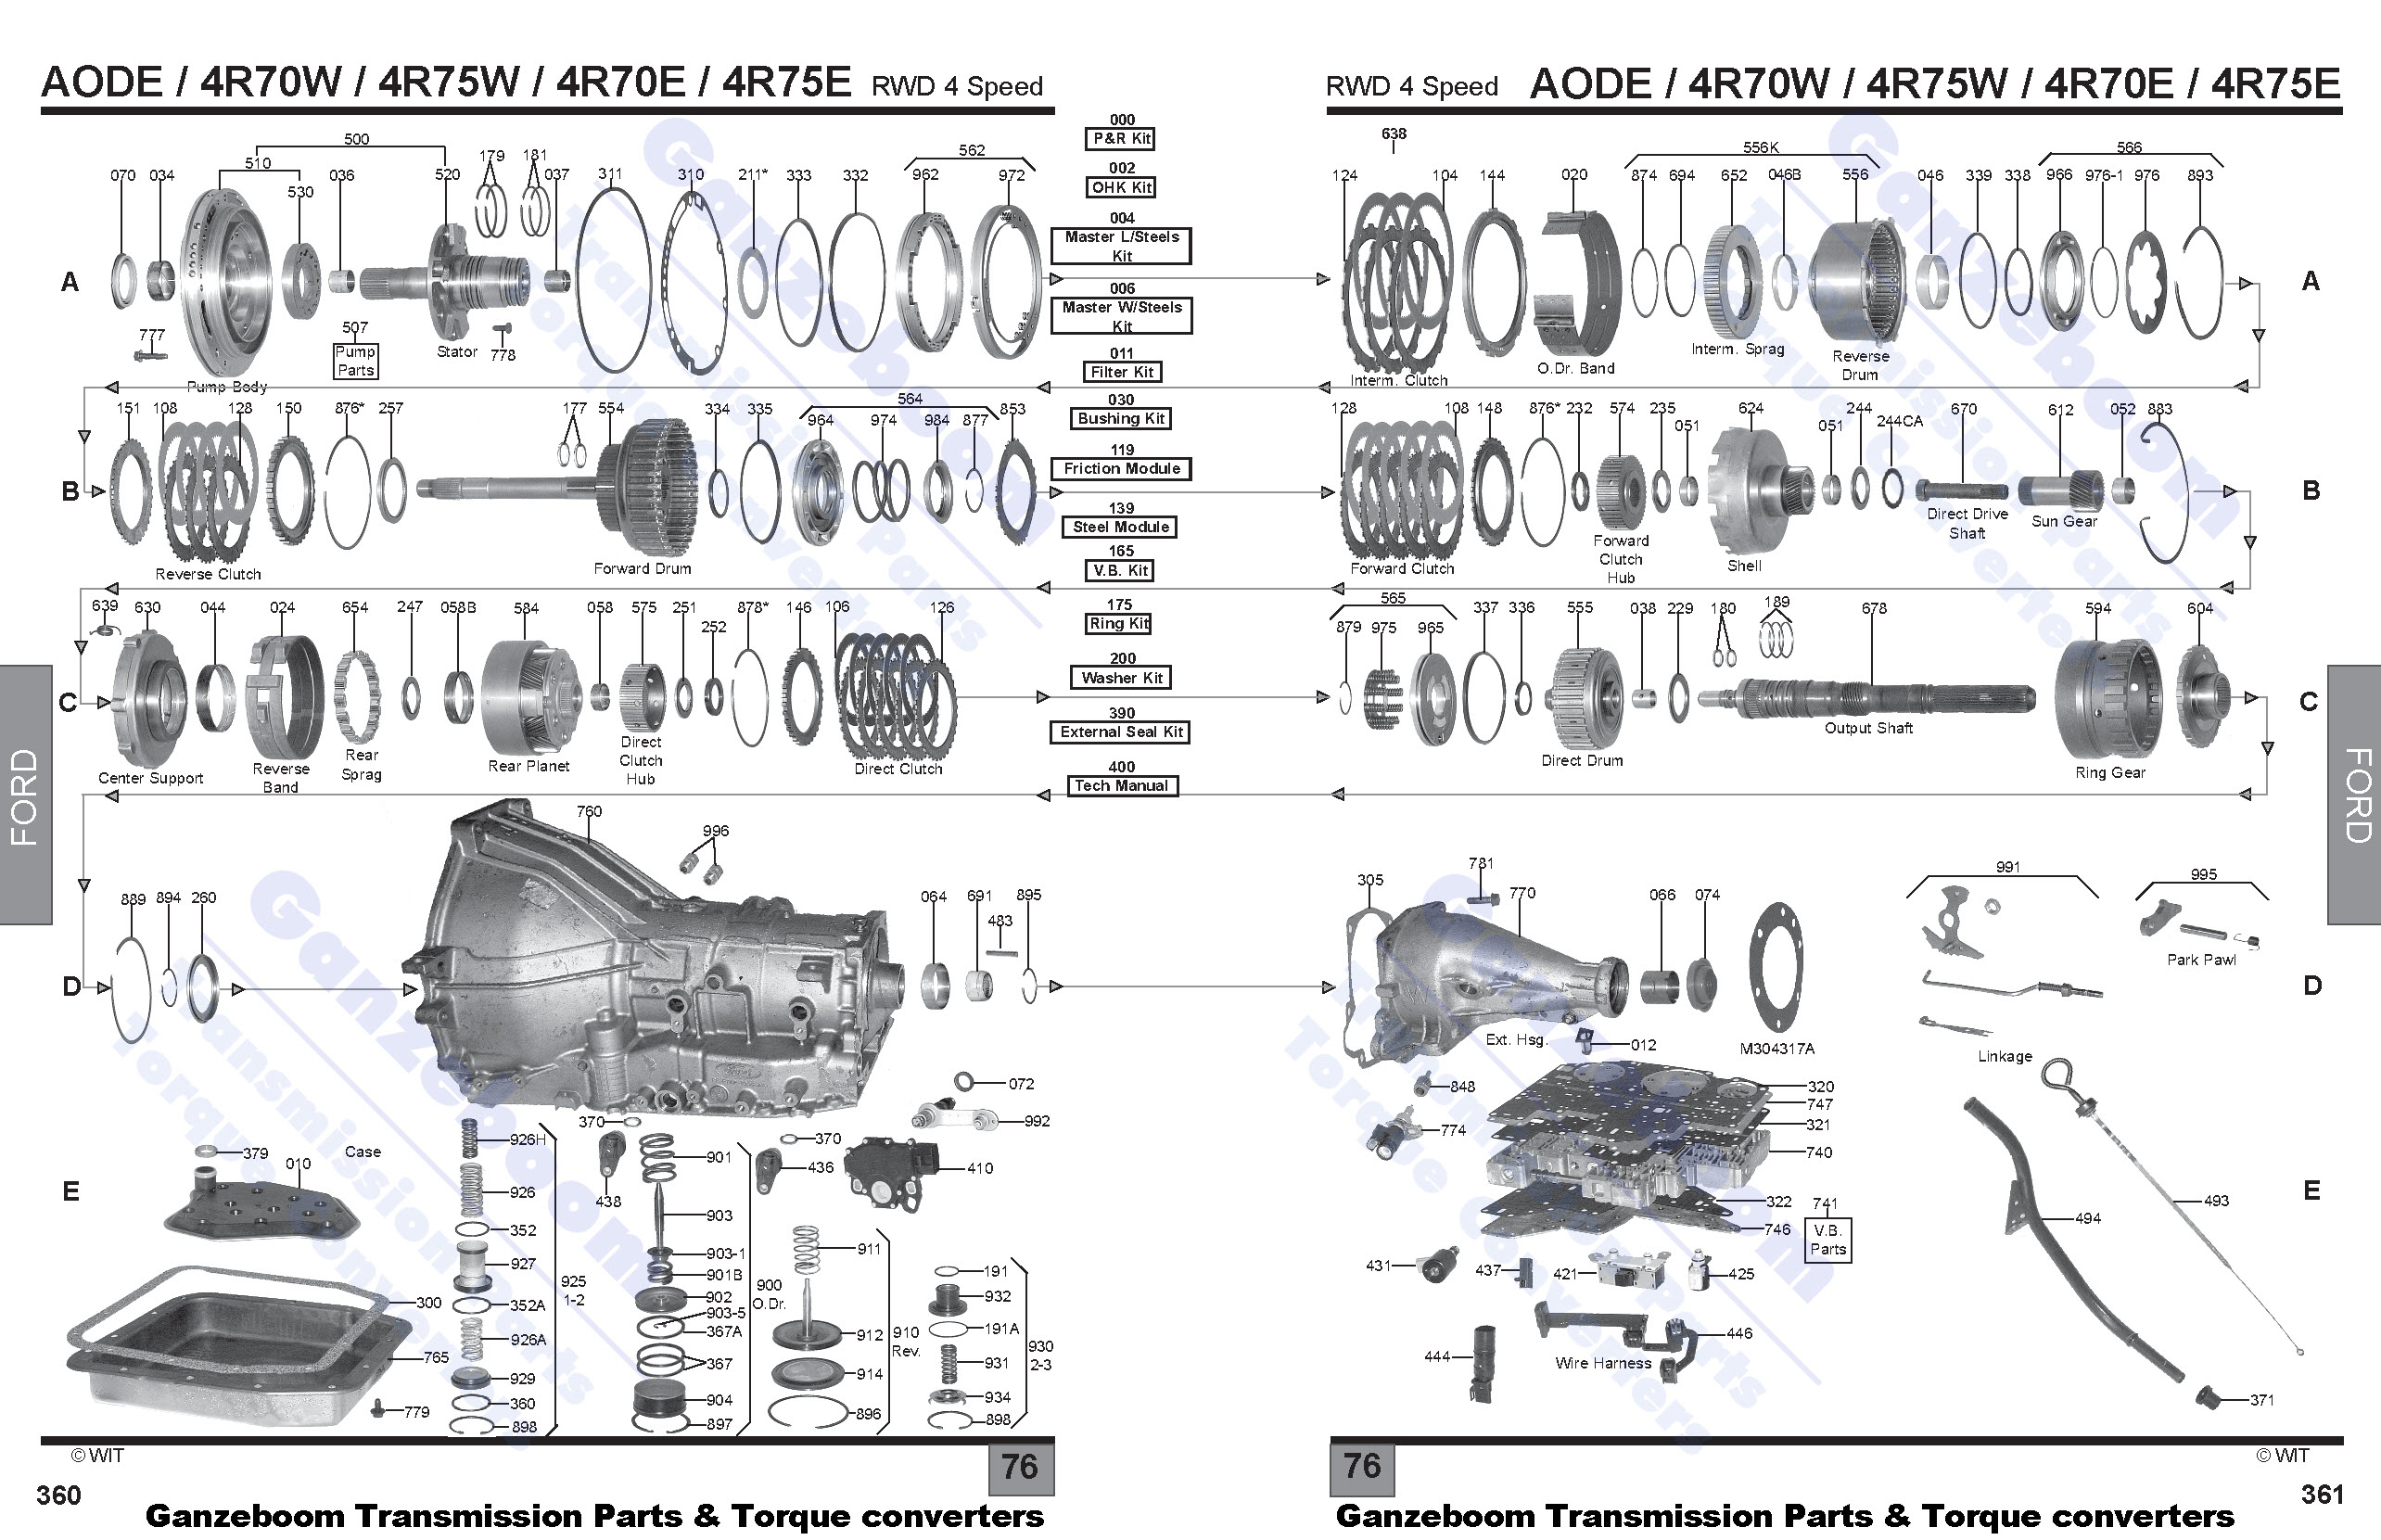 4r75e Transmission Parts Engine Wiring Diagram Images